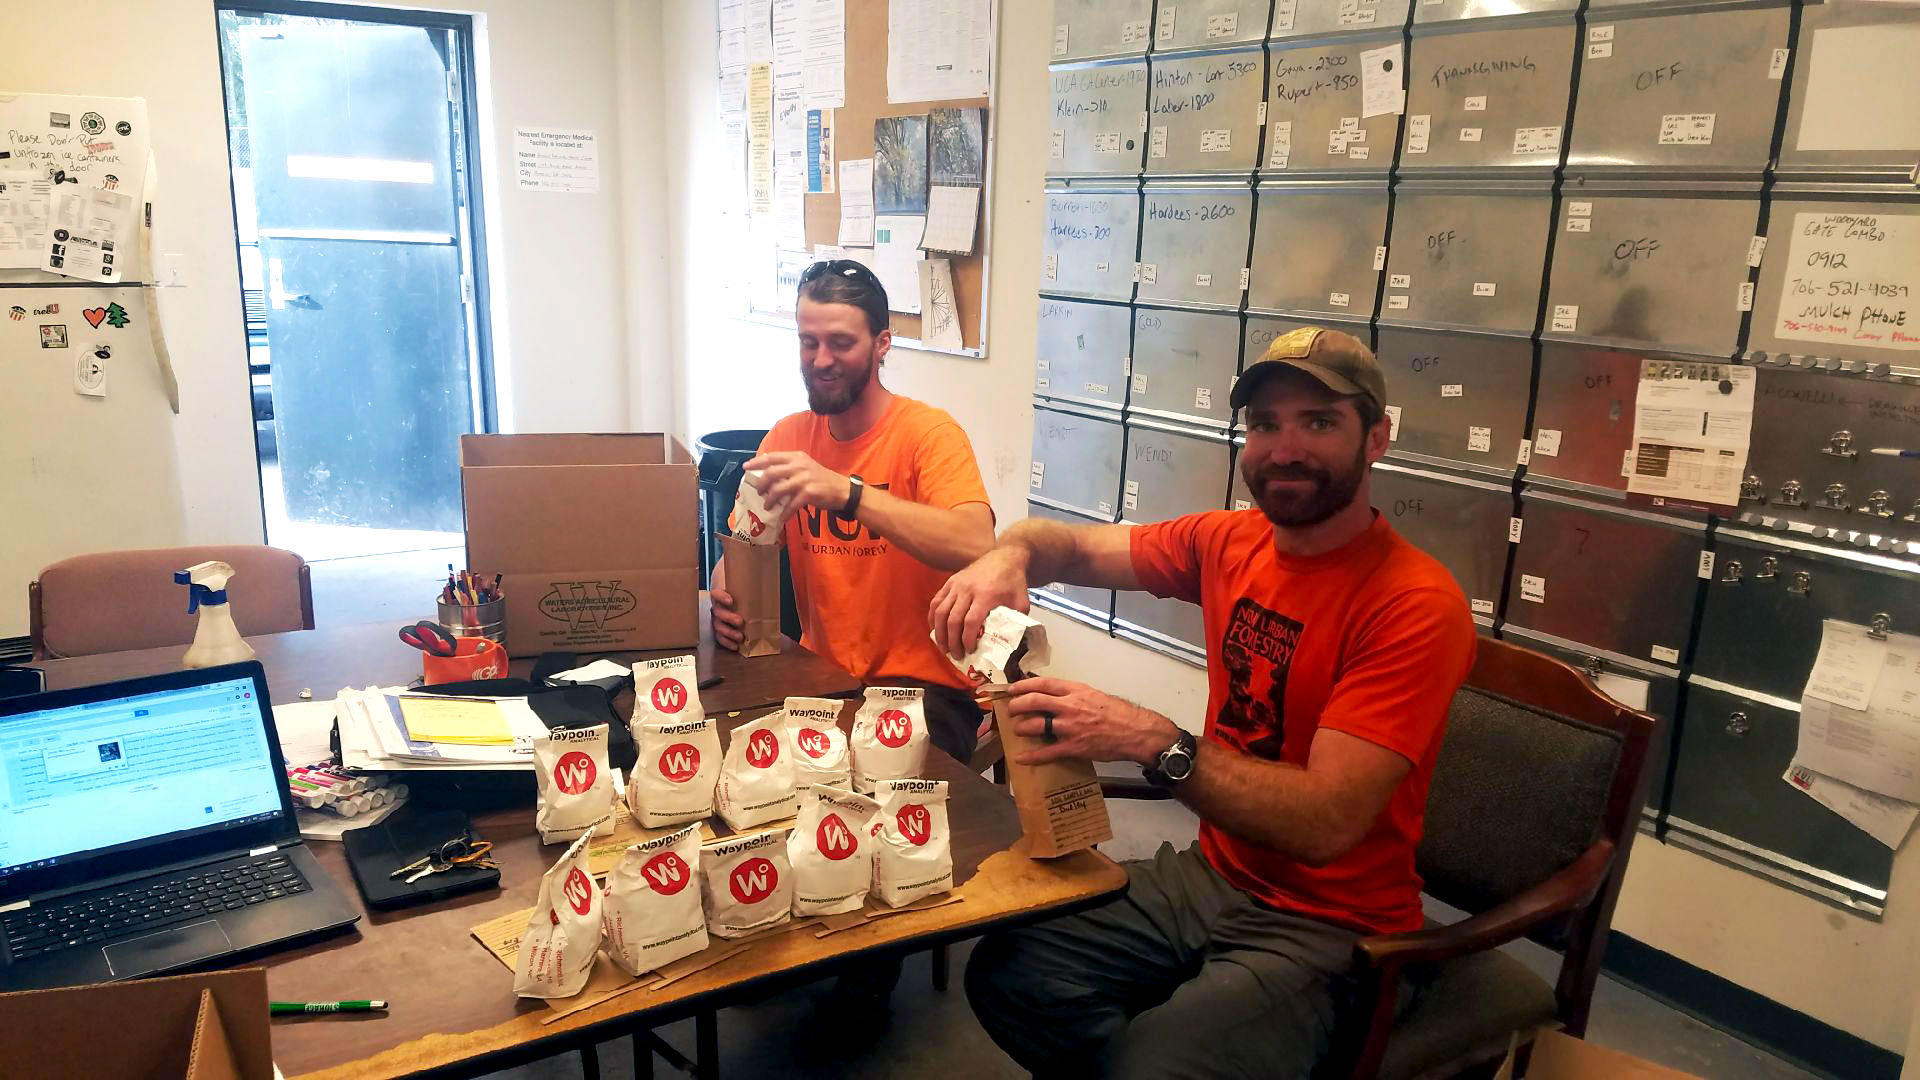 John-Ashley and Taylor preparing to ship off soil samples for nutrient analysis.